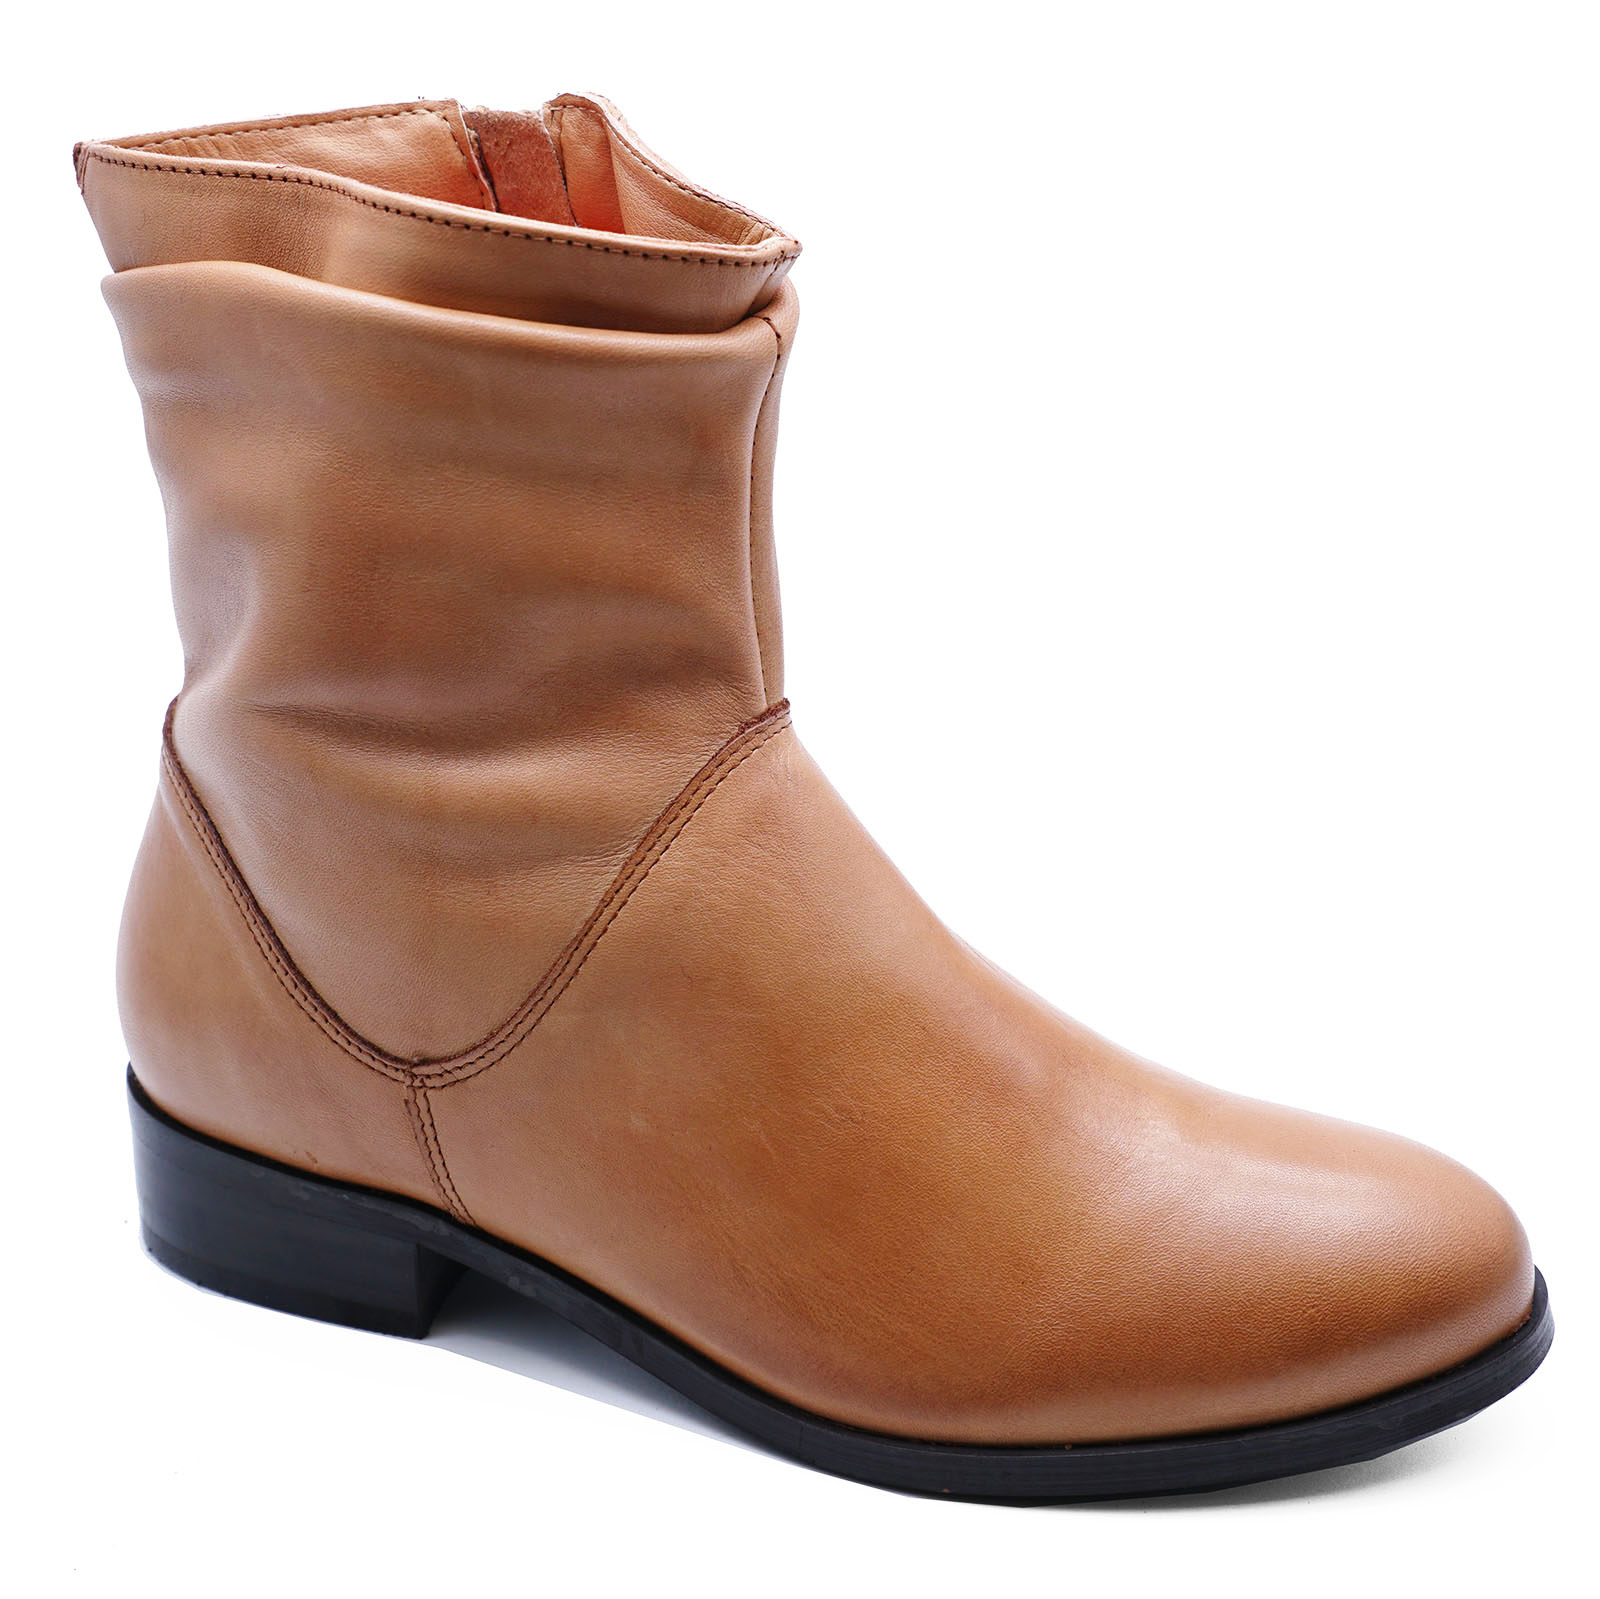 LADIES-FLAT-GENUINE-LEATHER-TAN-ZIP-UP-ANKLE-CALF-BOOTS-COMFY-SHOES-SIZES-2-9 thumbnail 12